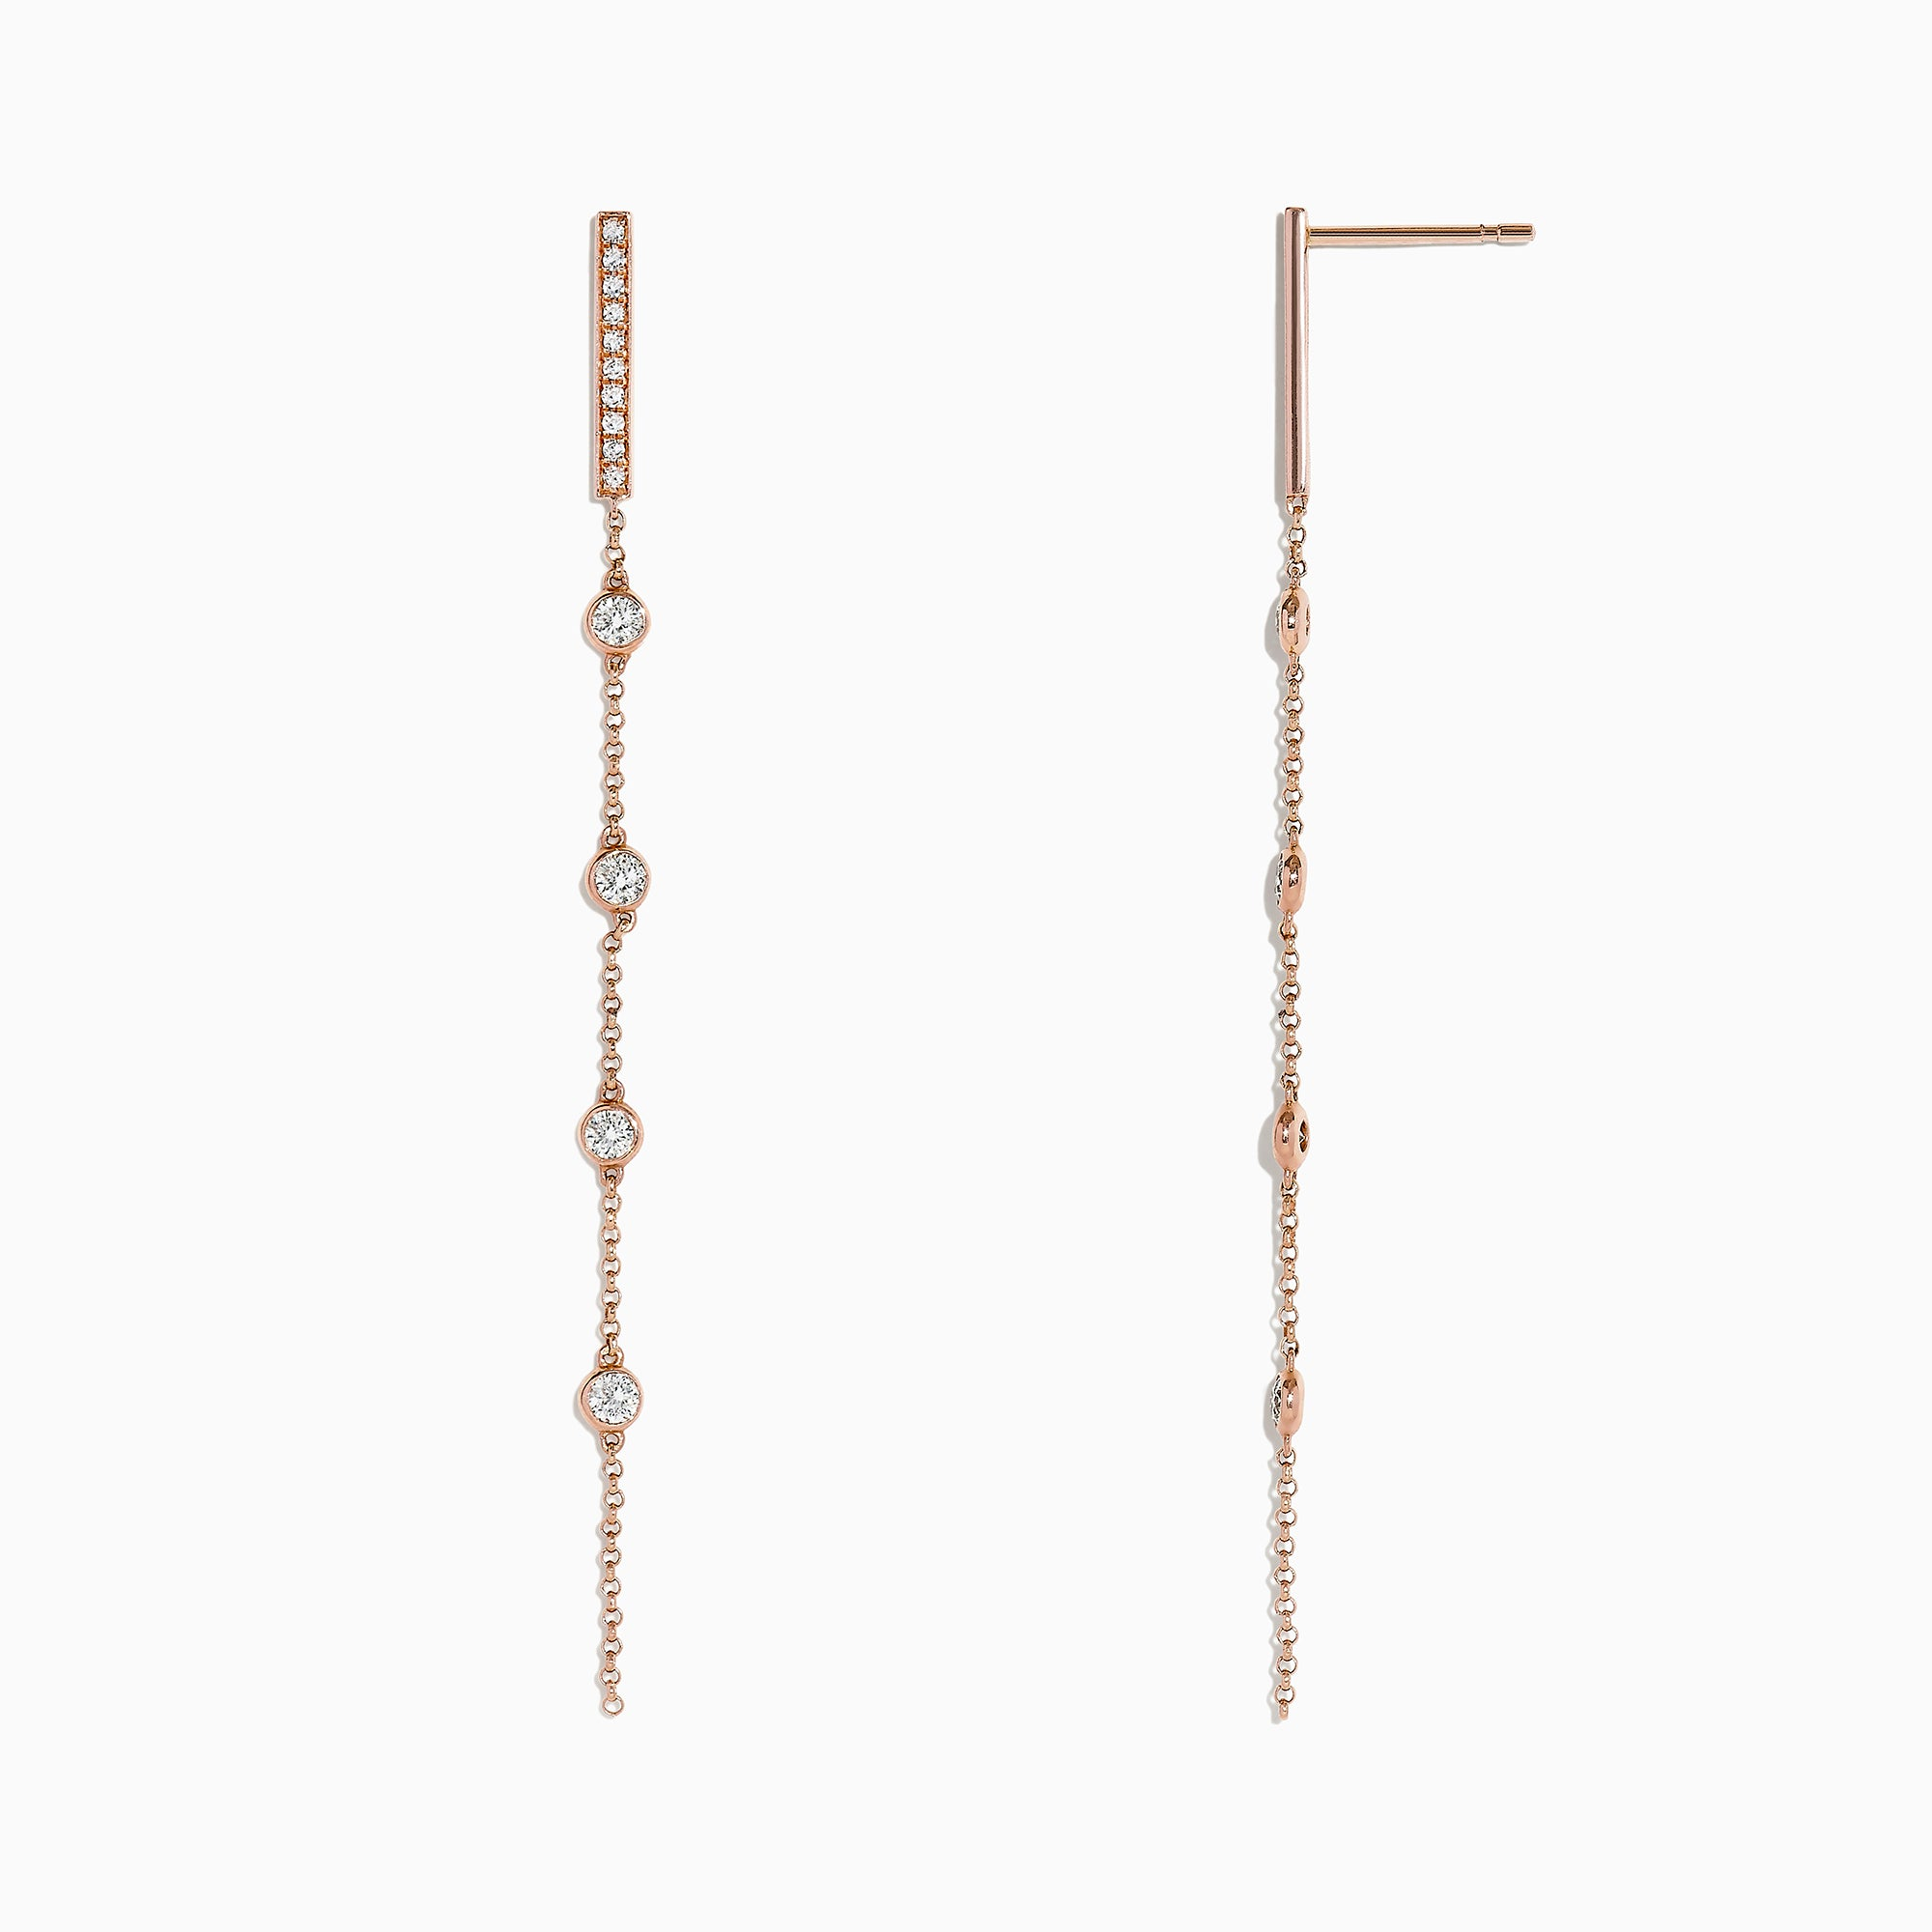 Effy Pave Rose 14K Rose Gold Dimaond Station Earrings, 0.49 TCW